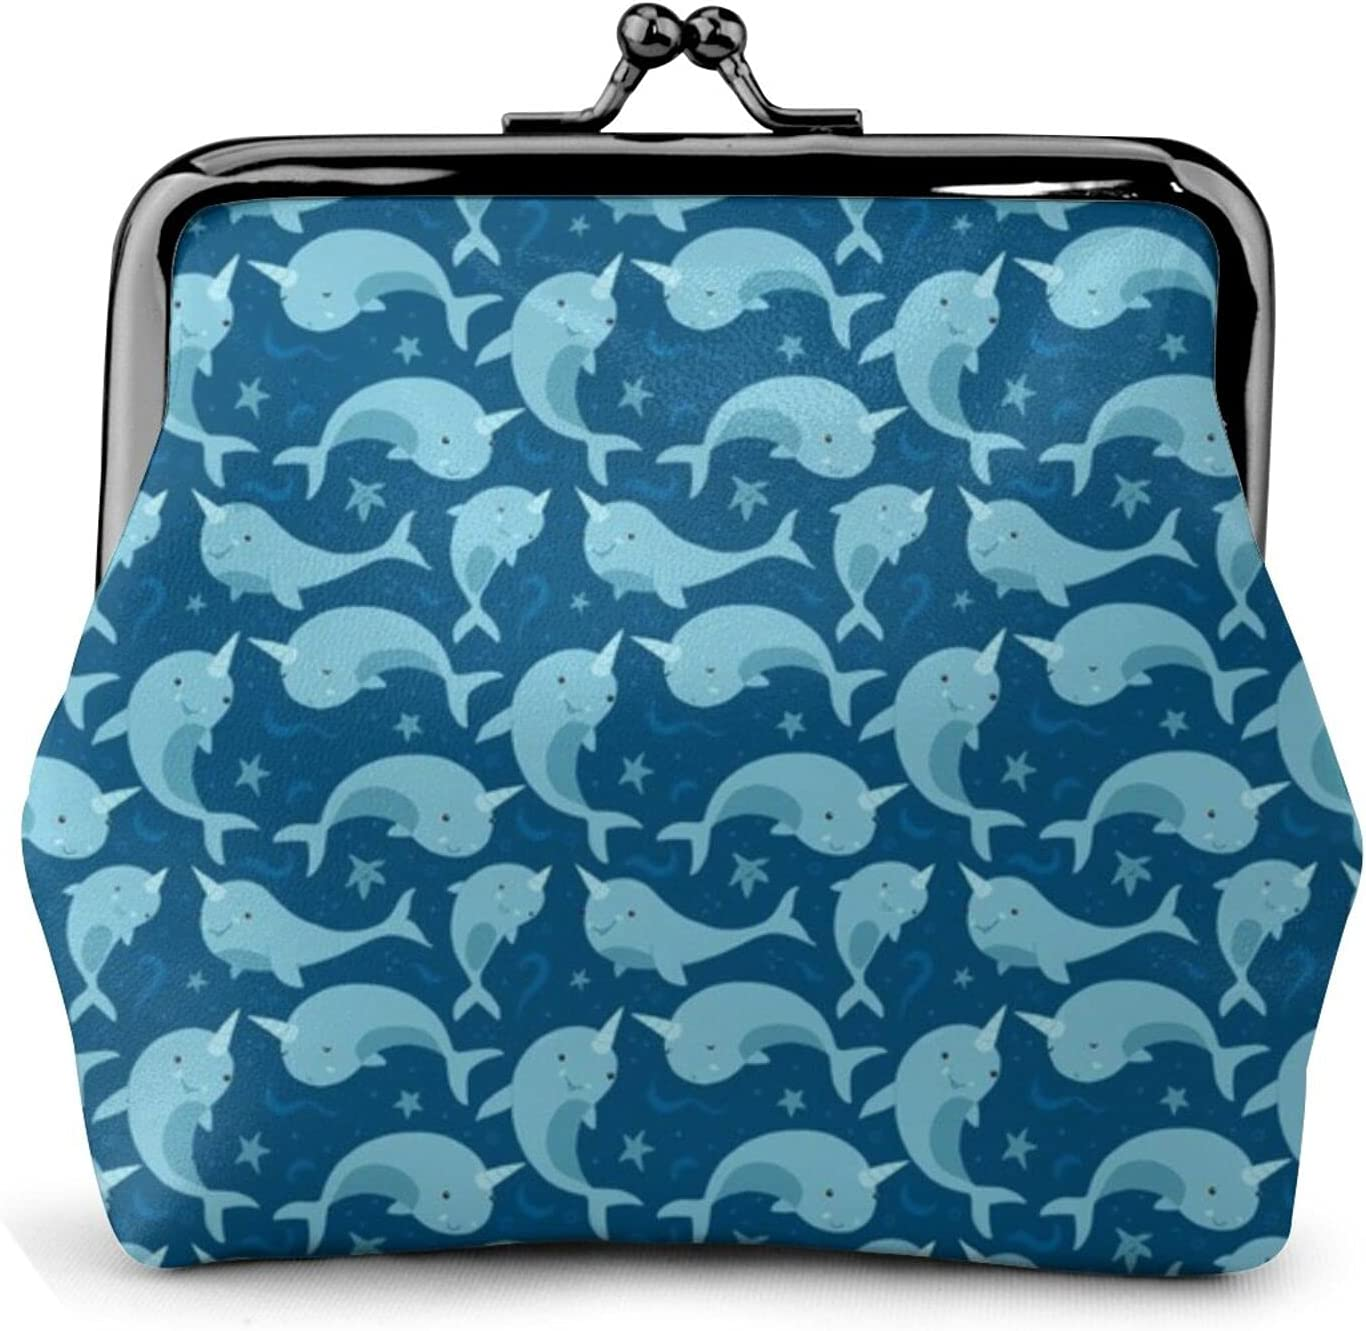 Cute Narwhals 1891 Leather Coin Purse Kiss Lock Change Pouch Vintage Clasp Closure Buckle Wallet Small Women Gift